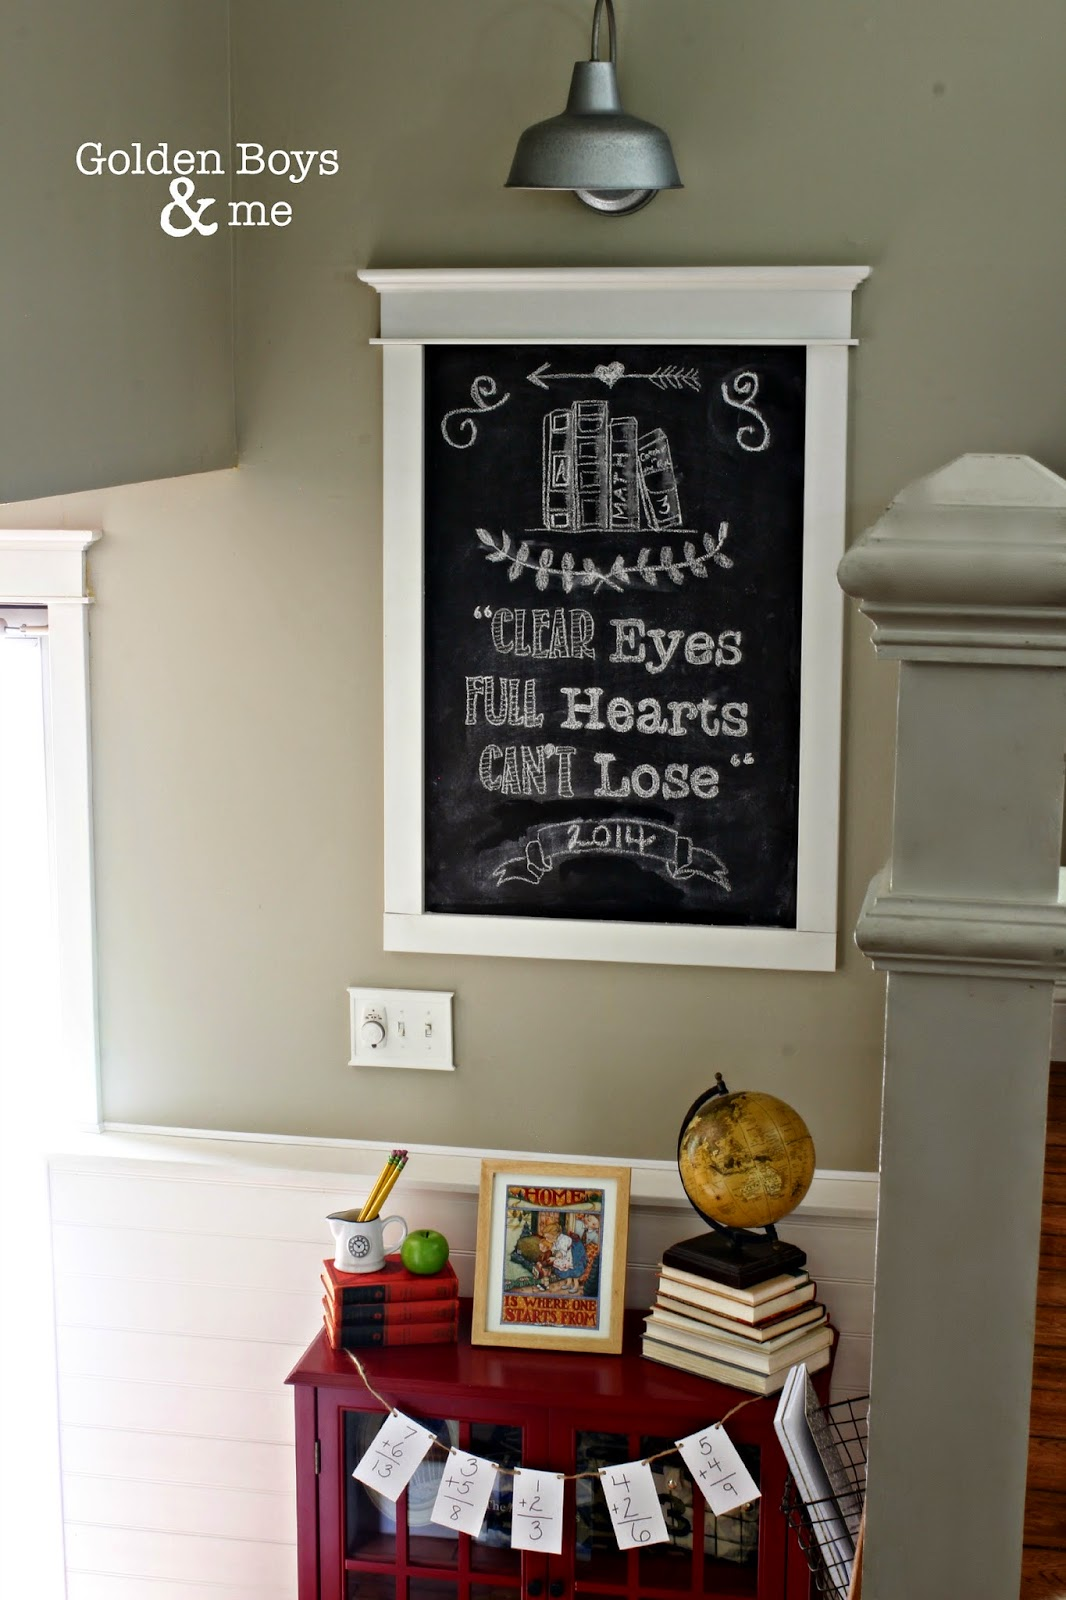 """Back to school chalkboard with Friday Night Lights quote """"Clear Eyes, Full Hearts, Can't Lose"""" with Lowe's portfolio galvanized light"""